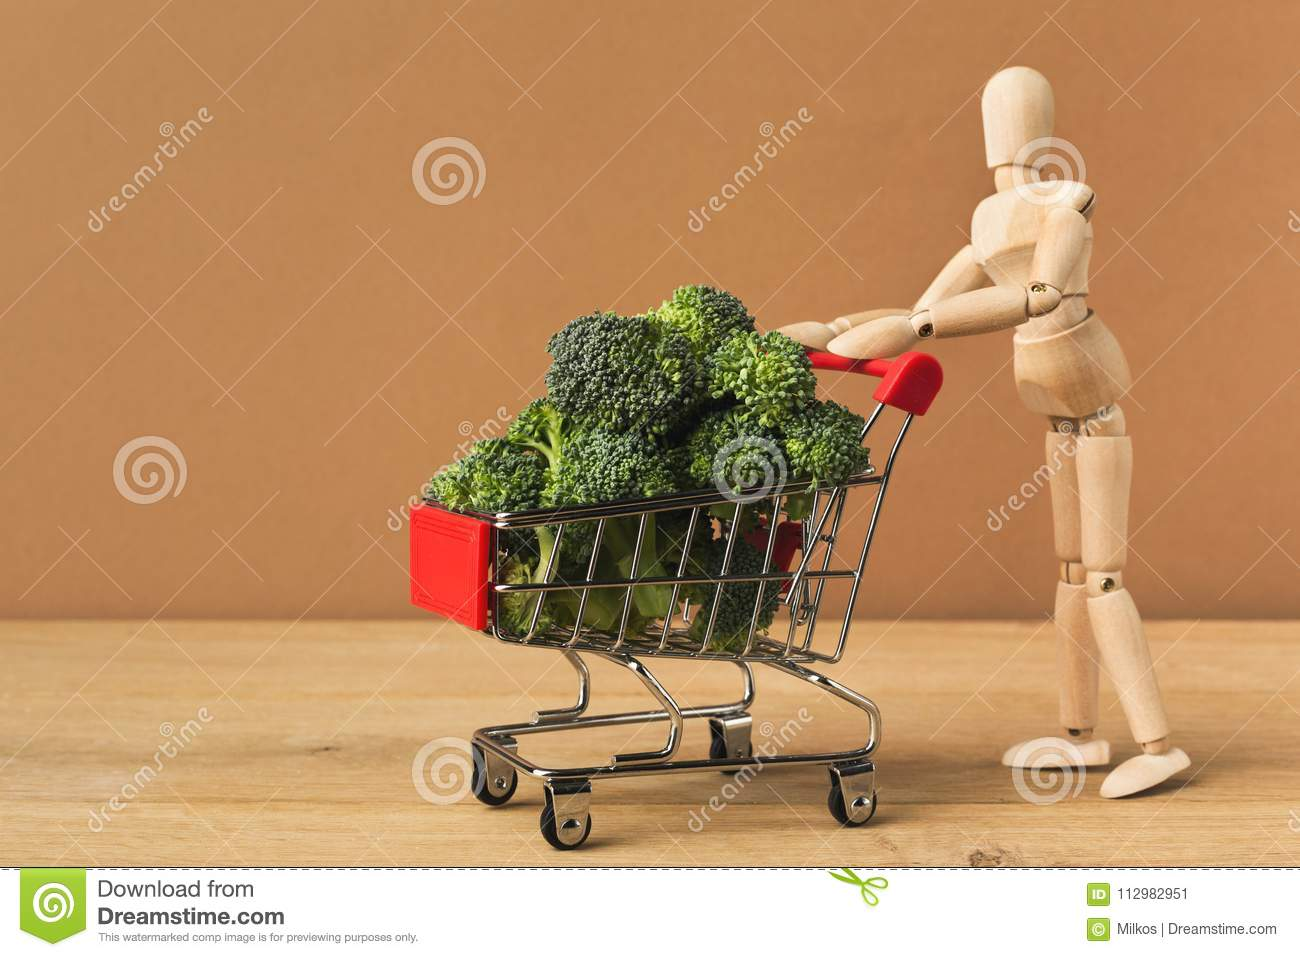 Mannequin with shop cart full of broccoli